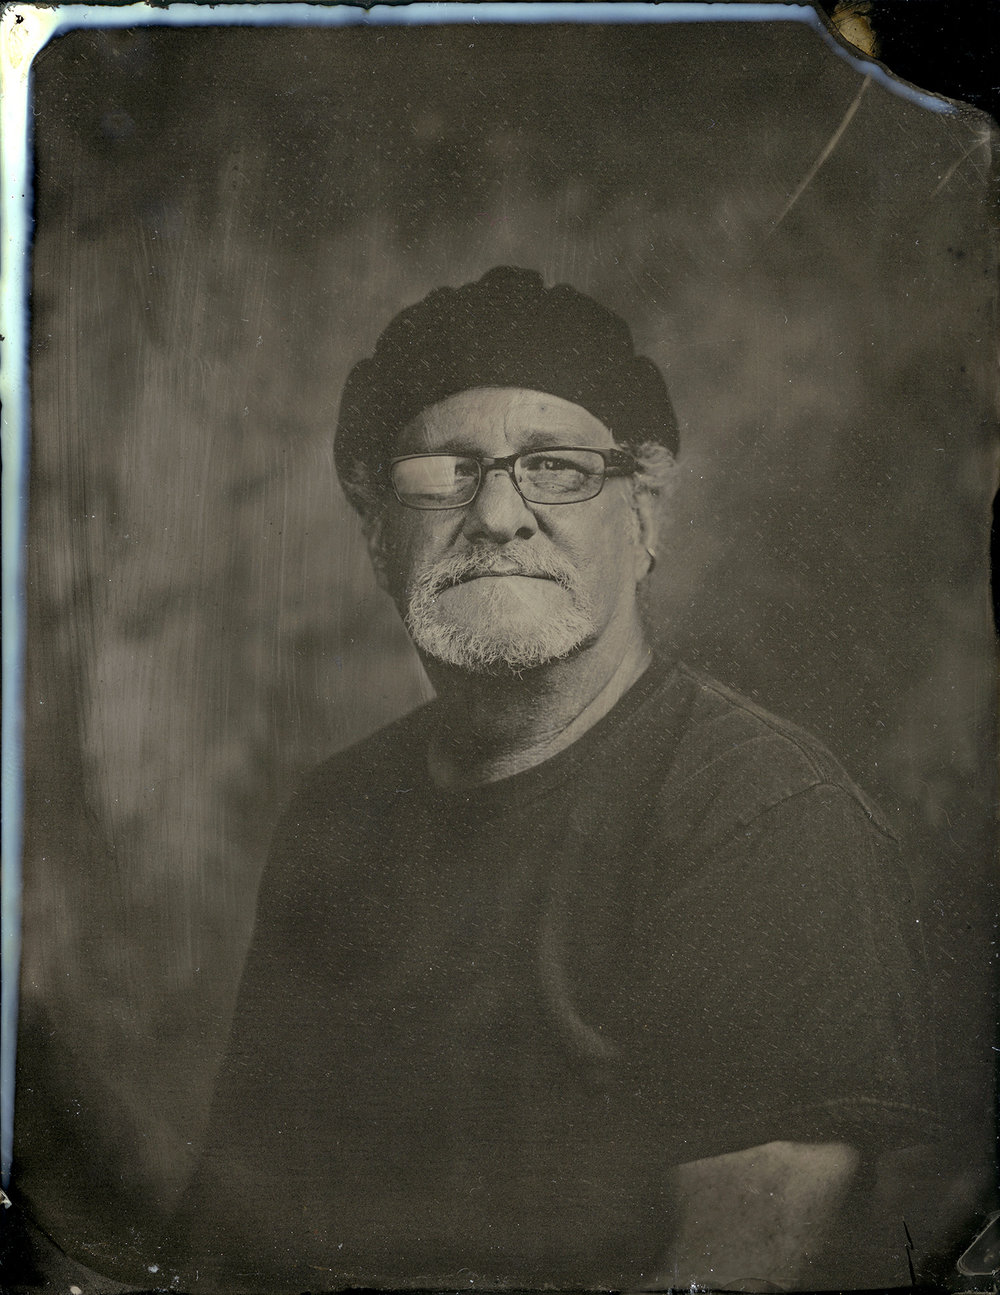 Tintype of Ray Bidegain created by Ashley Jennings.